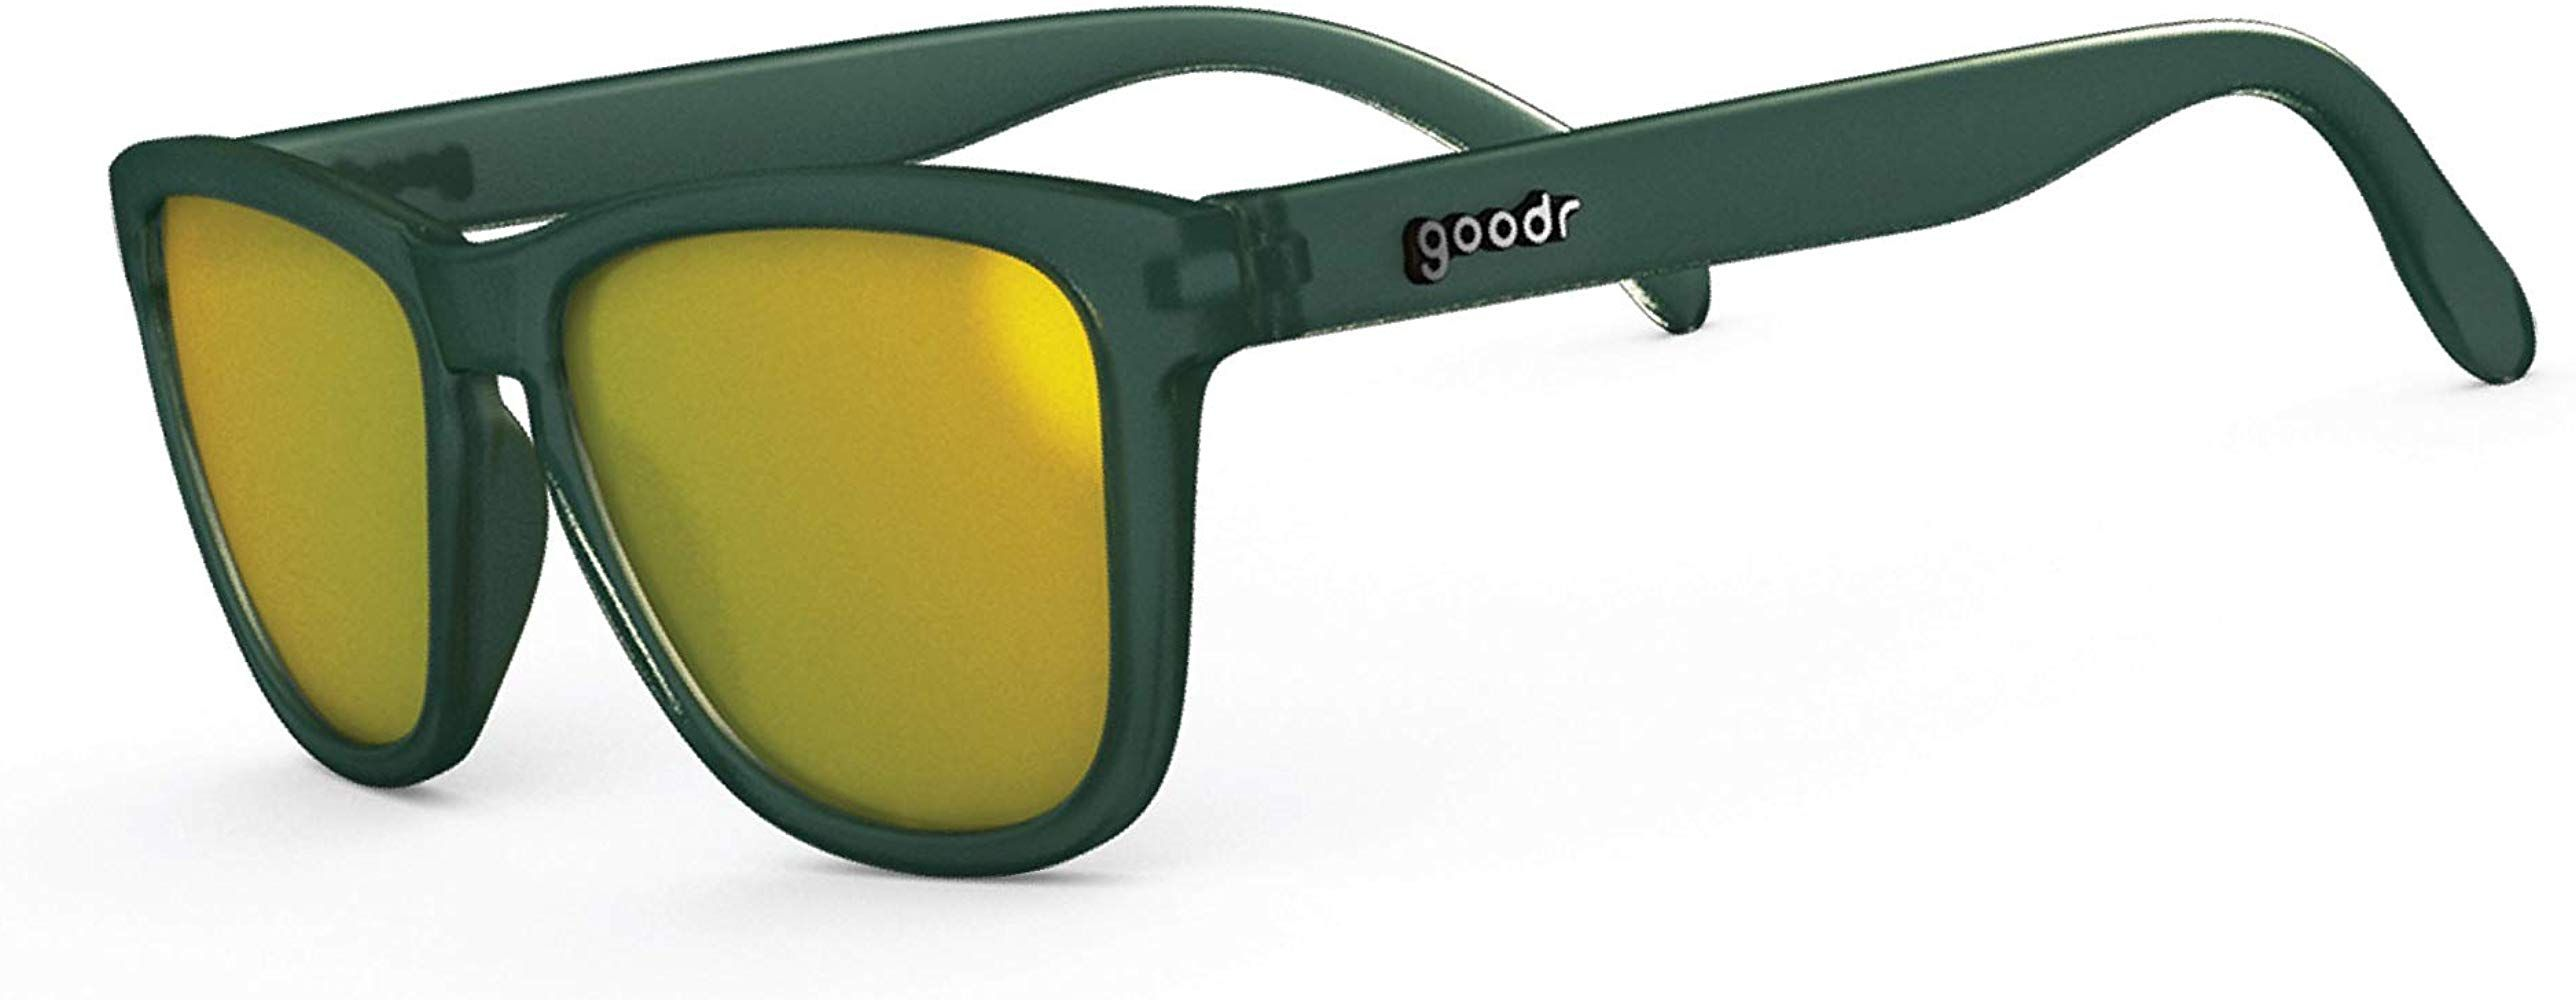 no slip, no bounce, all polarized goodr OG Sunglasses